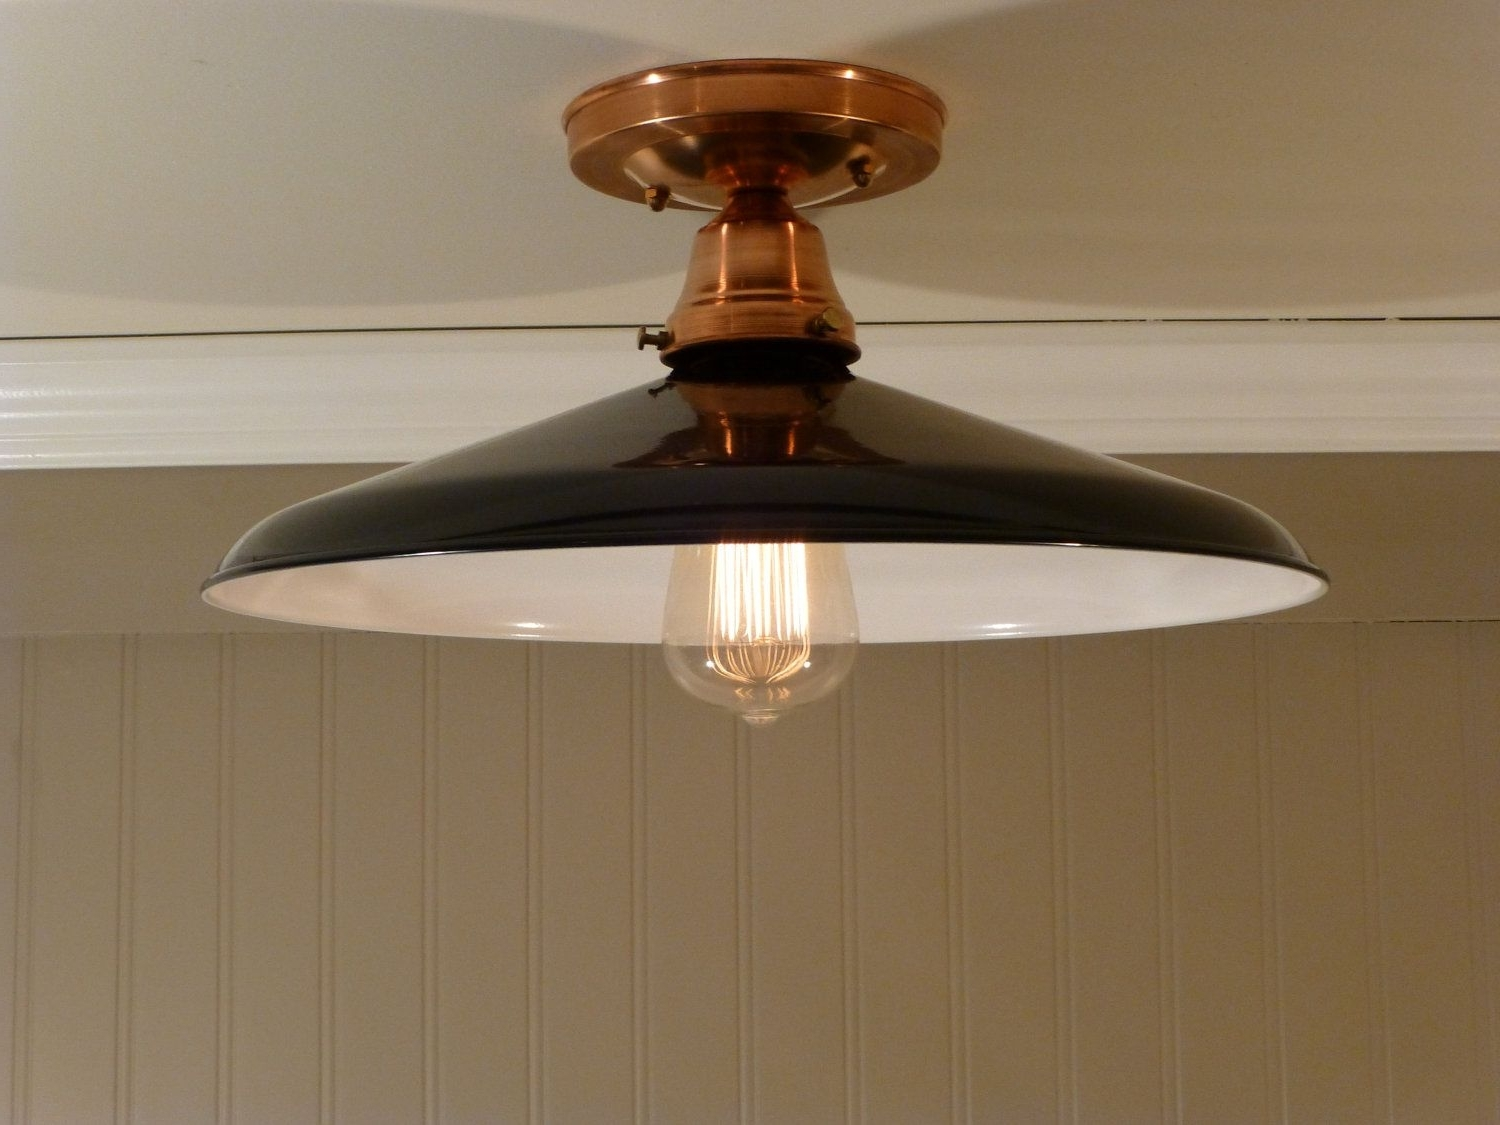 Dining Room Light – Low Ceiling For The Home Pinterest Best Throughout 2018 Low Ceiling Chandeliers (View 4 of 15)